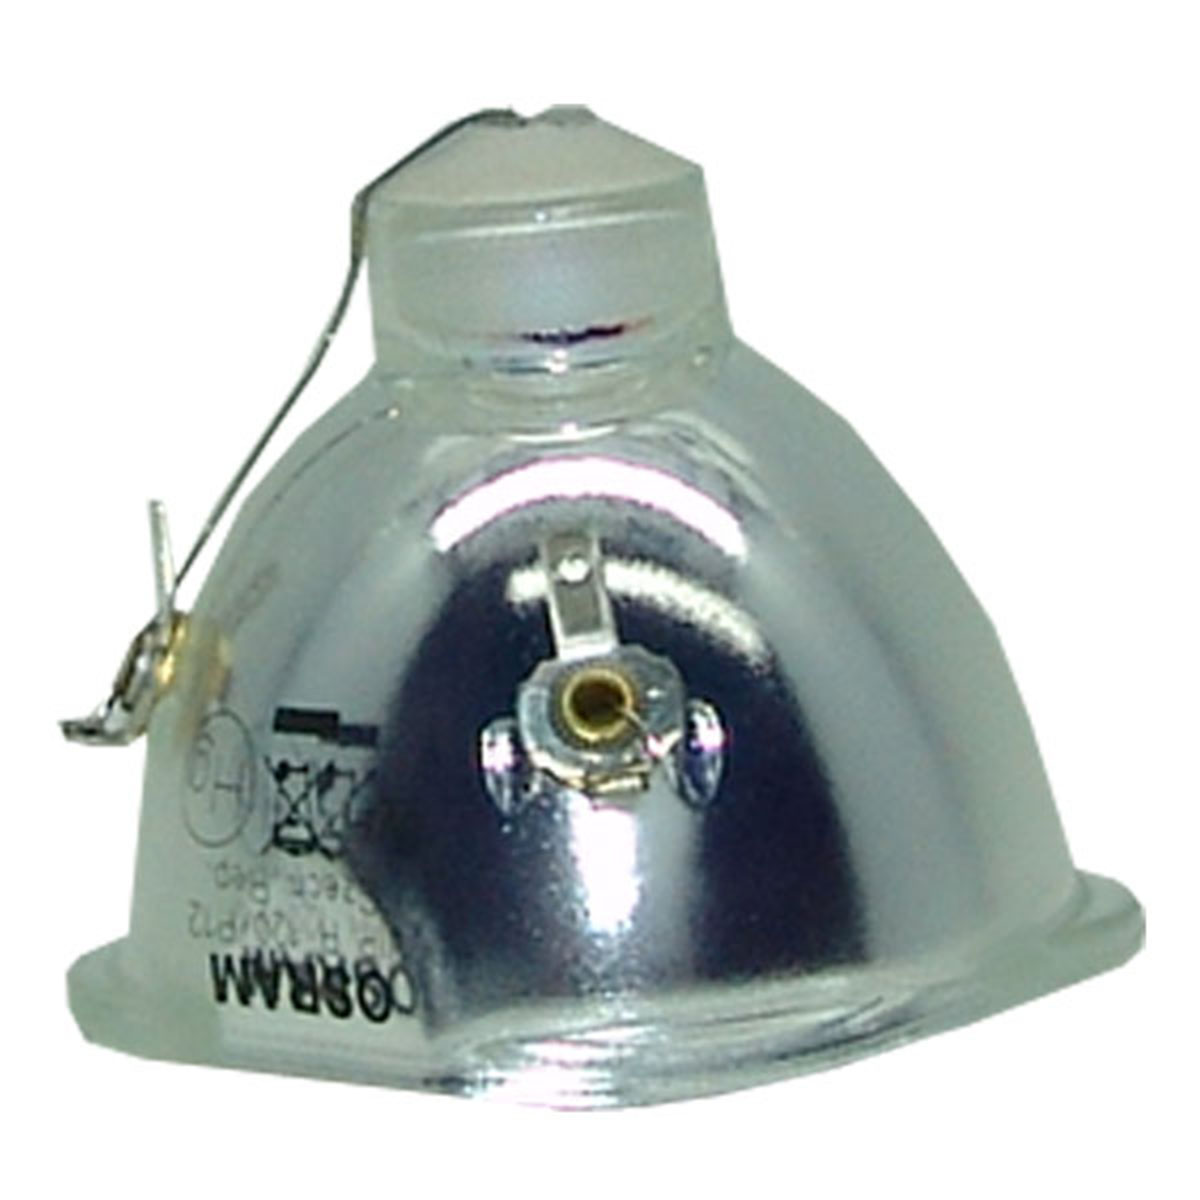 Original Osram Projector Lamp Replacement for HP L1515A (Bulb Only) - image 3 of 5